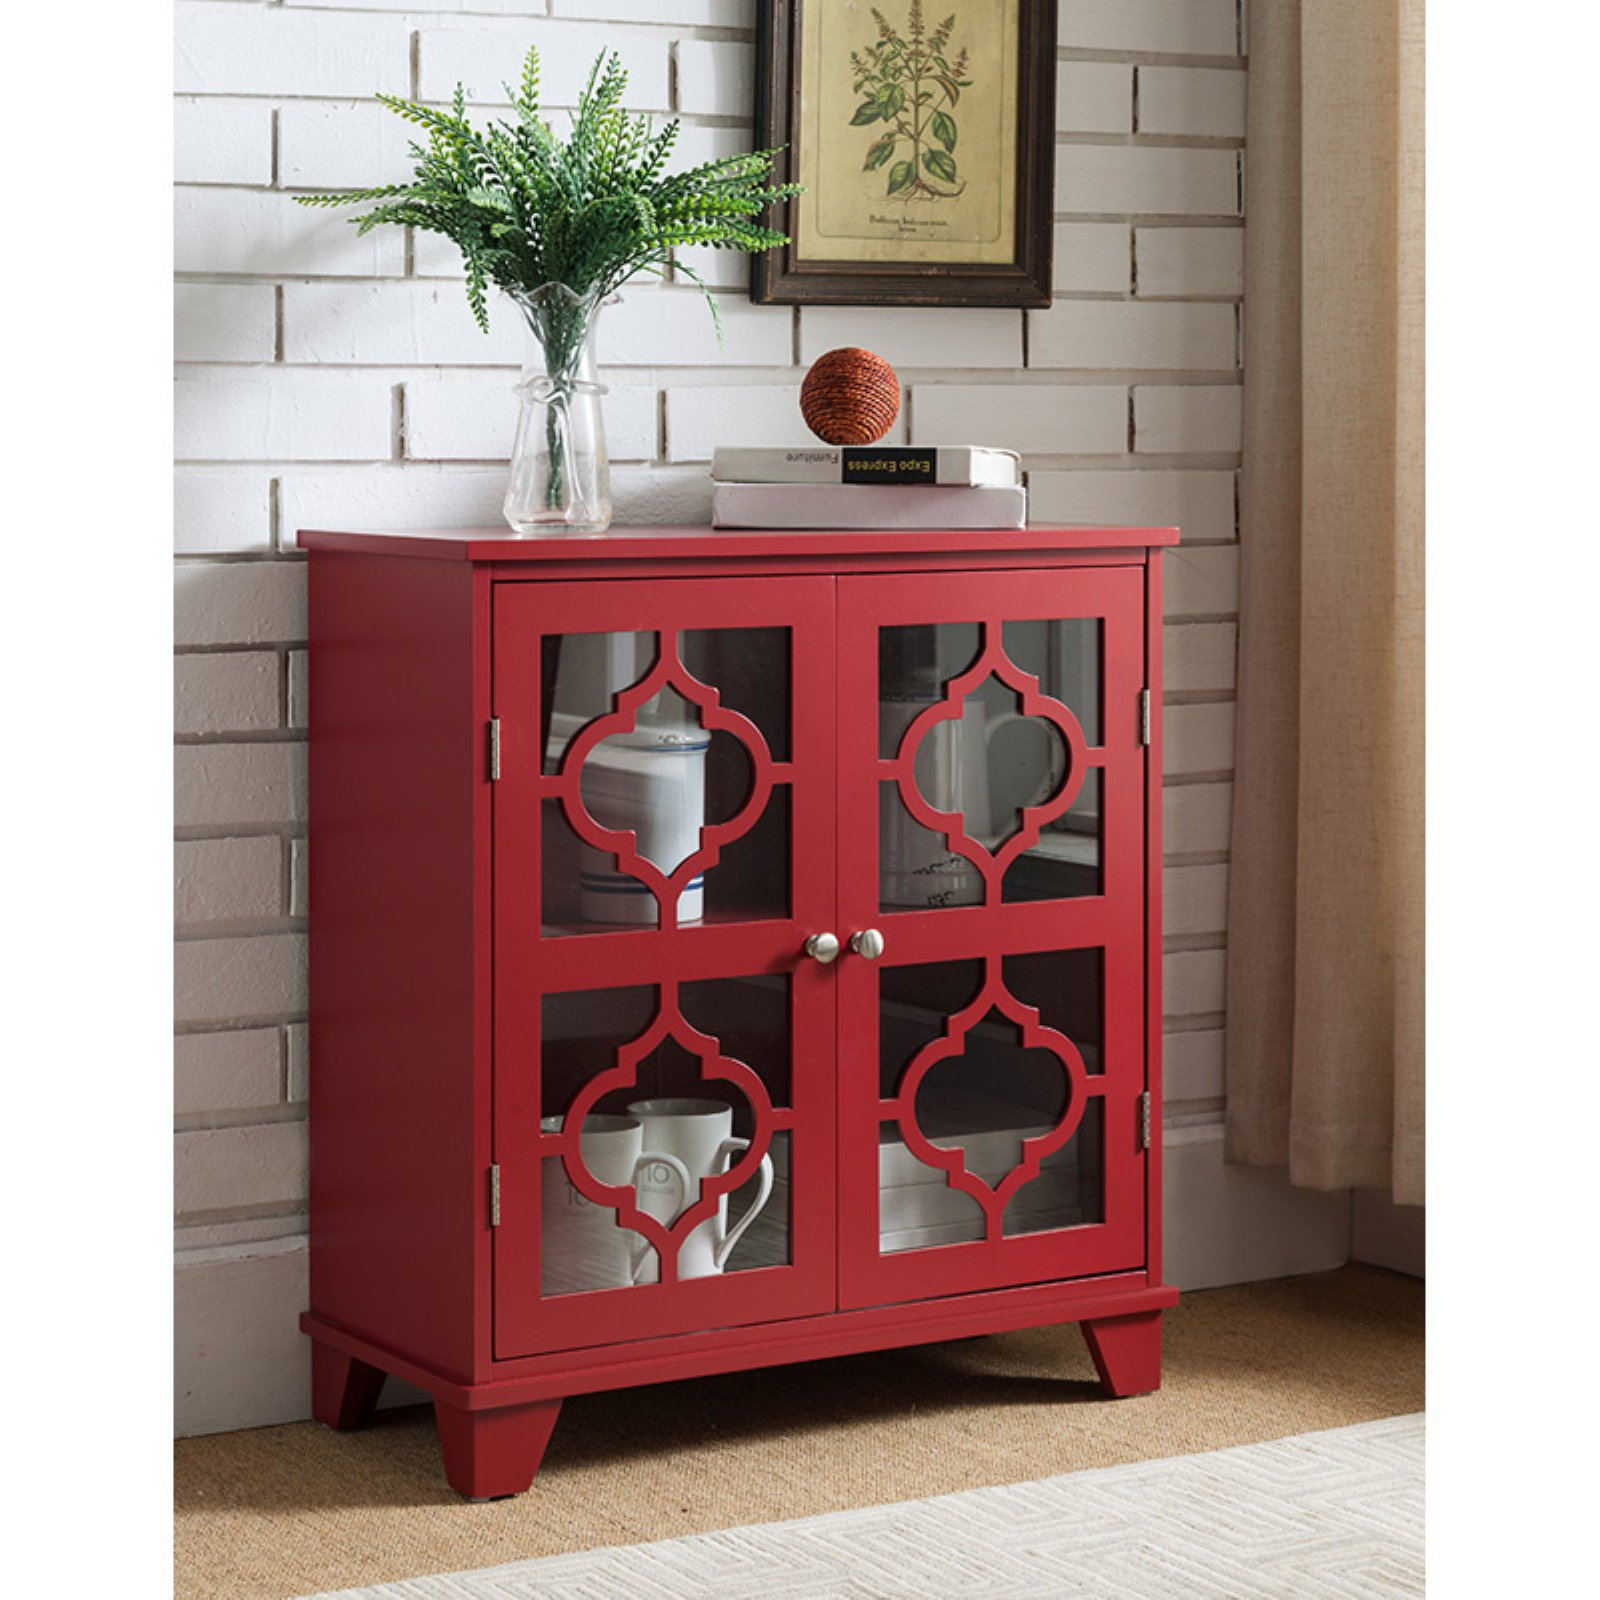 K&B Furniture Red Wood 2 Door Storage Cabinet